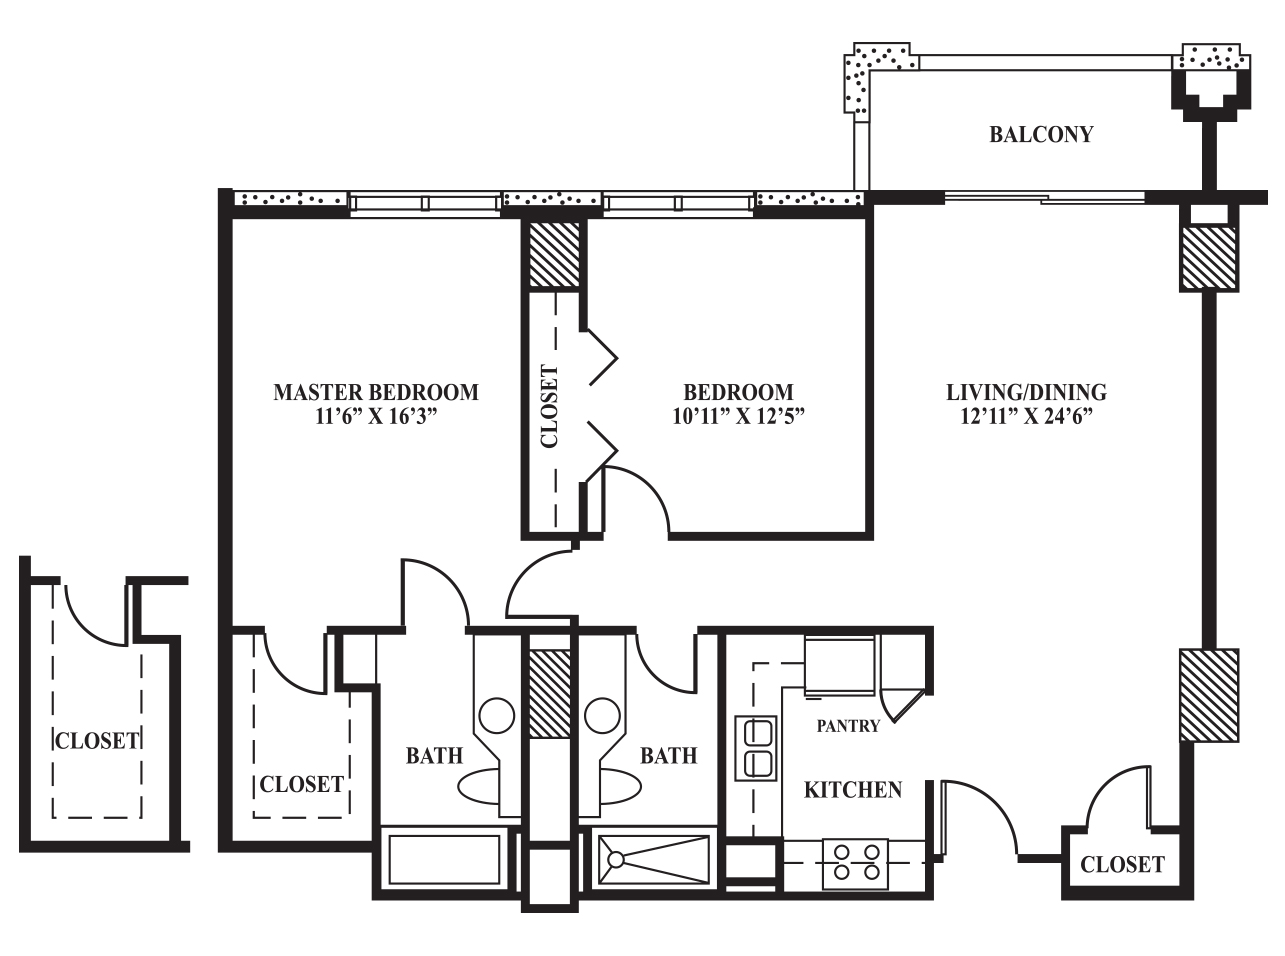 Floor Plan D | 1,034 sq ft - The Towers on Park Lane